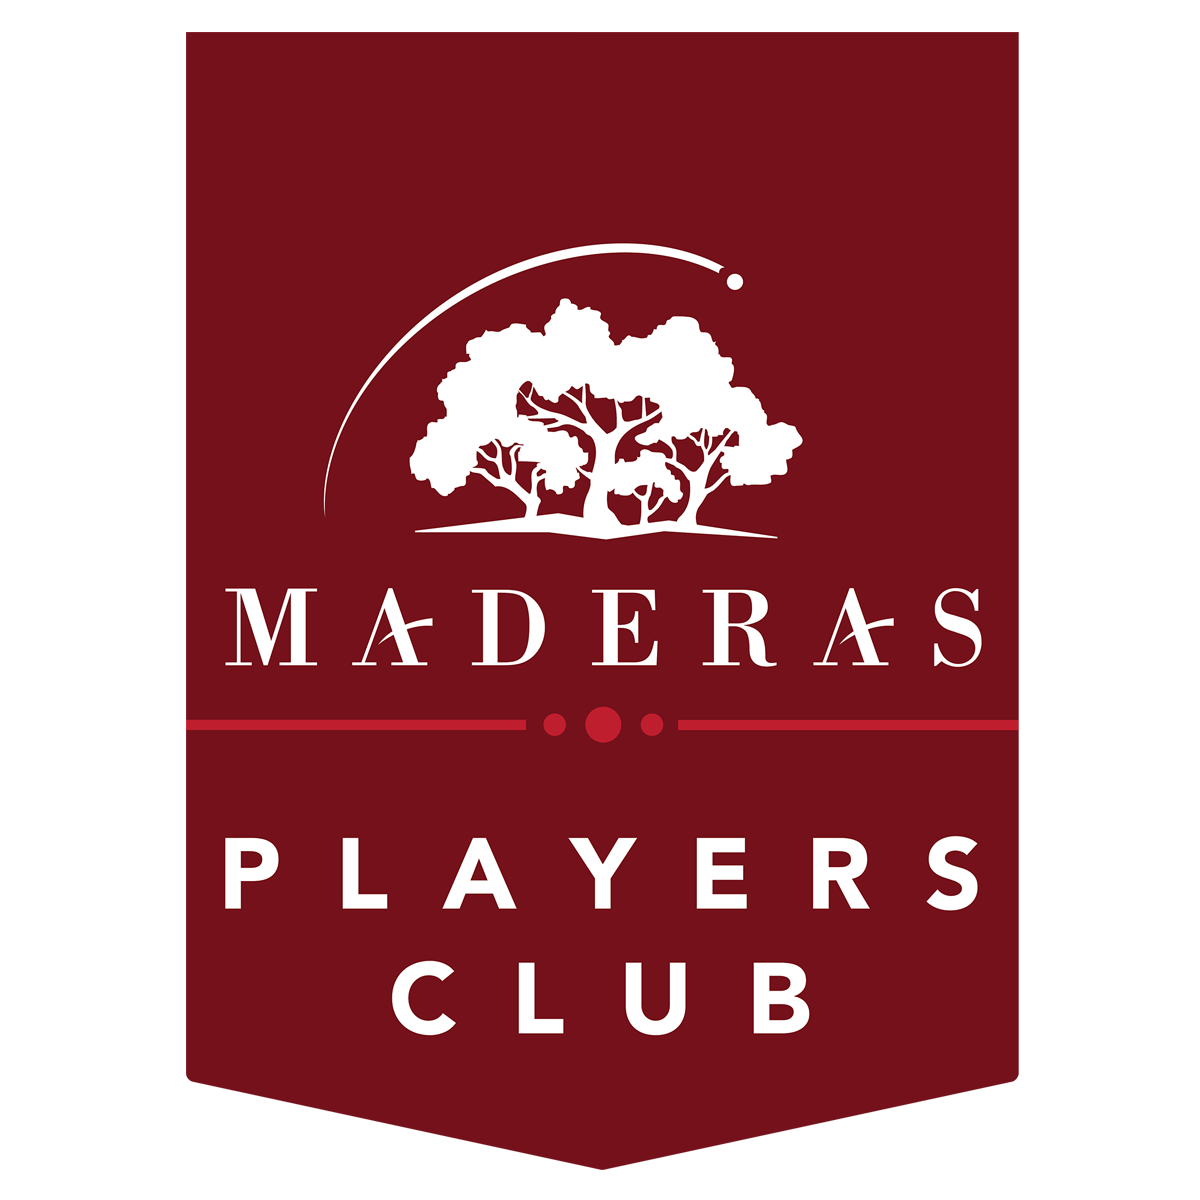 Maderas Players Club